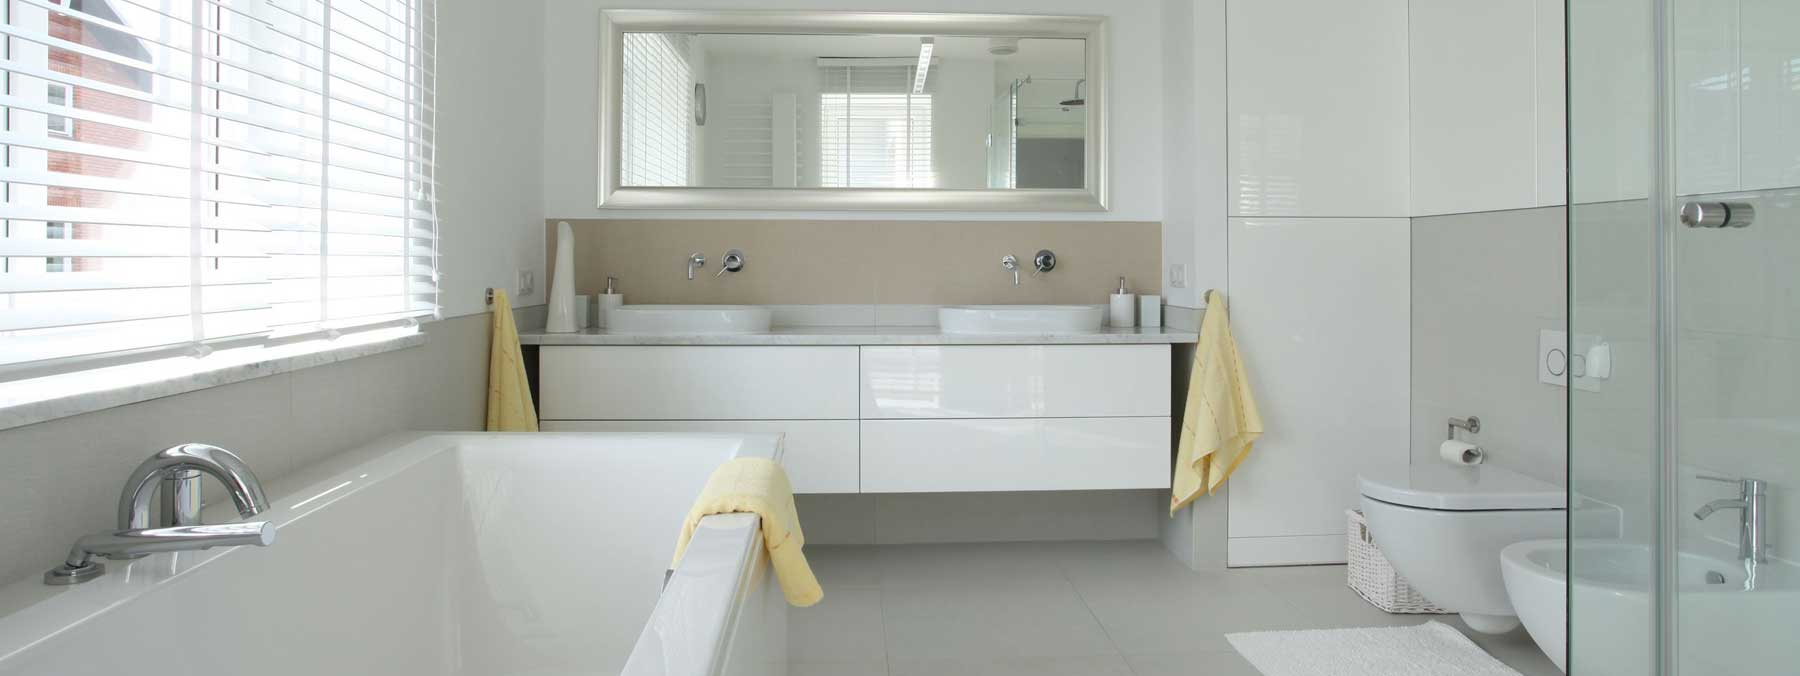 bathroom ideas sydney bathroom renovations sydney custom bathrooms designs amp ideas 10443